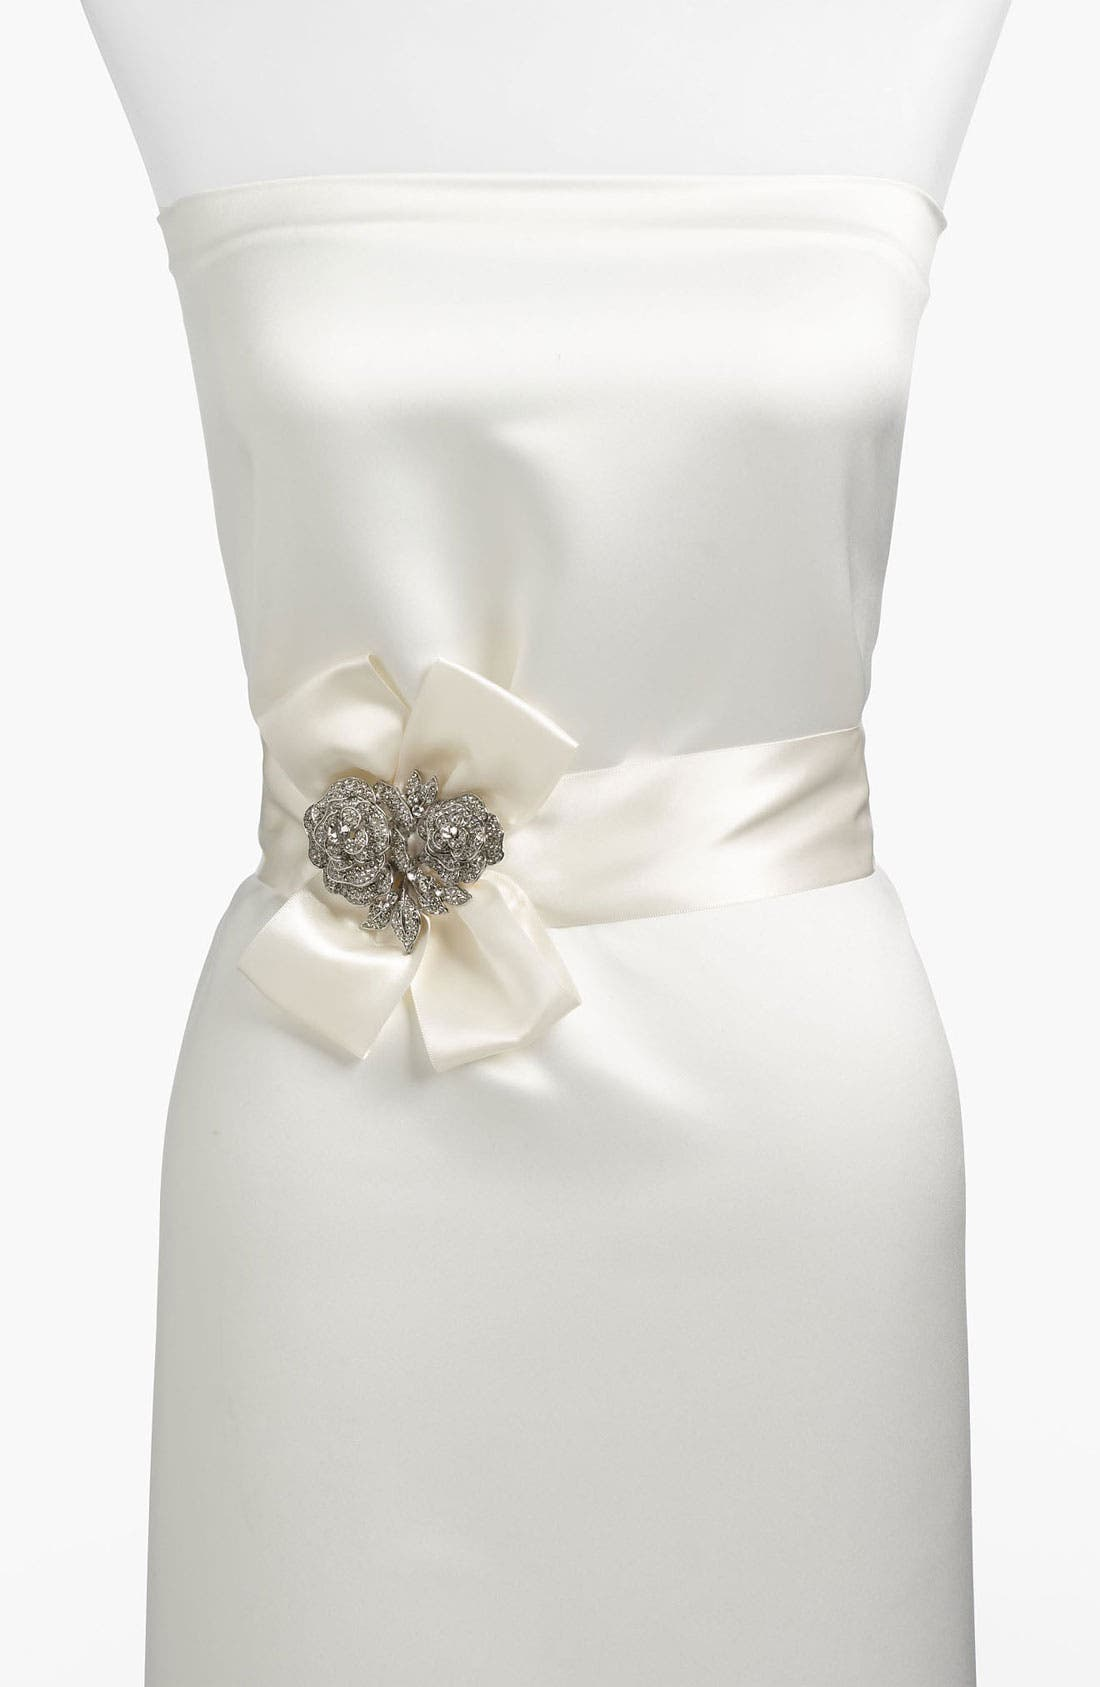 Main Image - Nina Satin Crystal Flower Sash